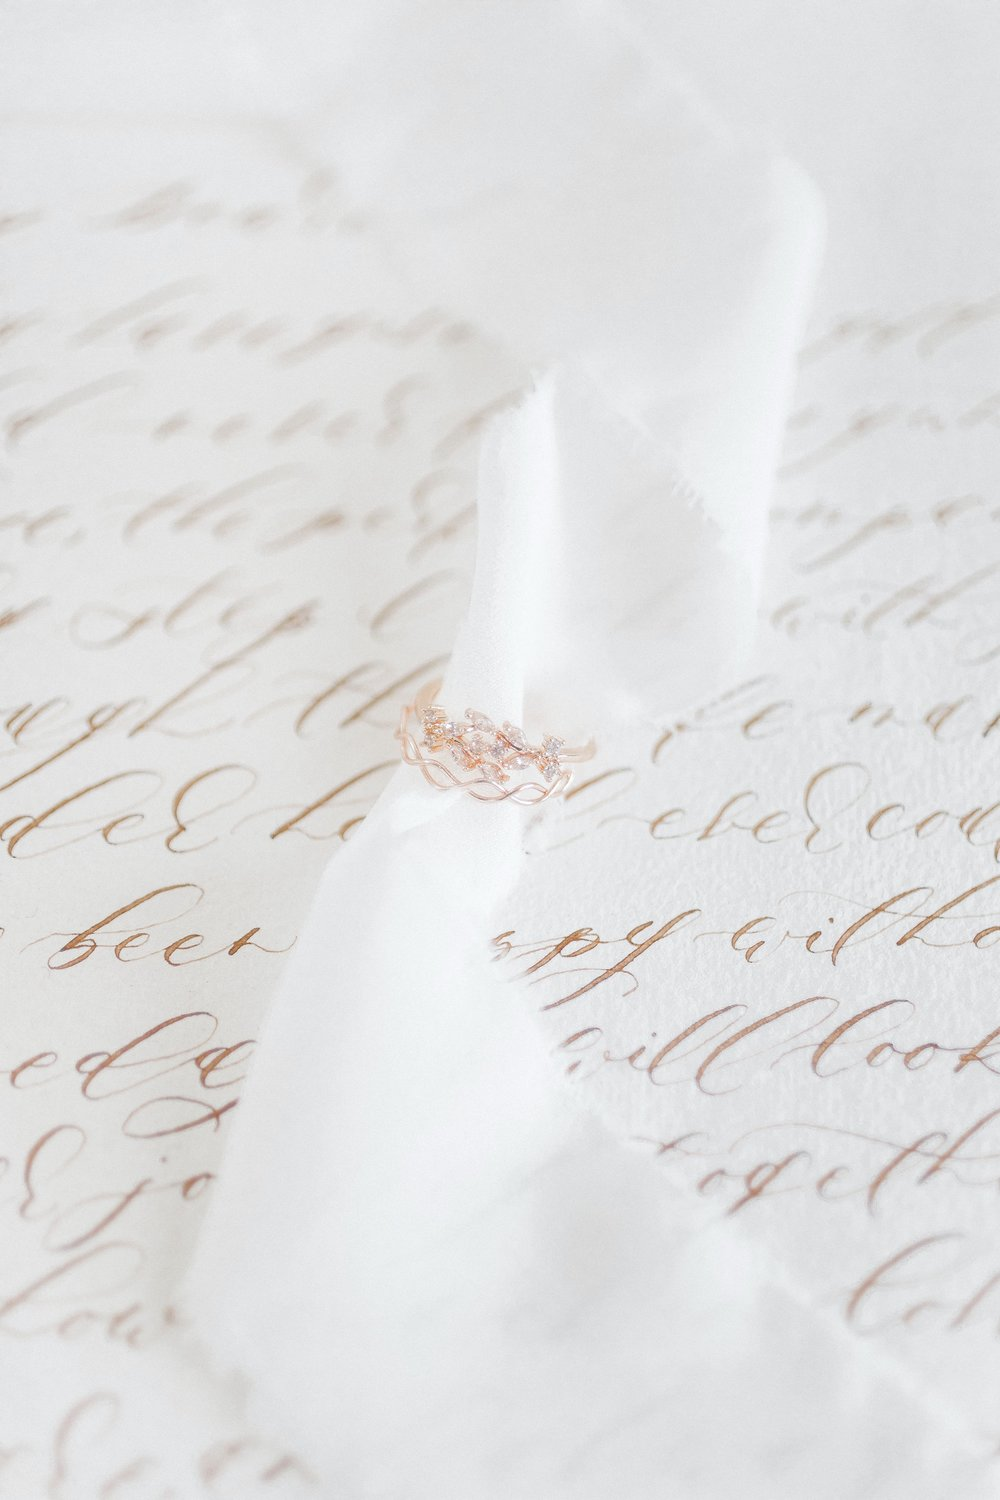 Calligraphy Love Letter by Locust House Fine Stationery